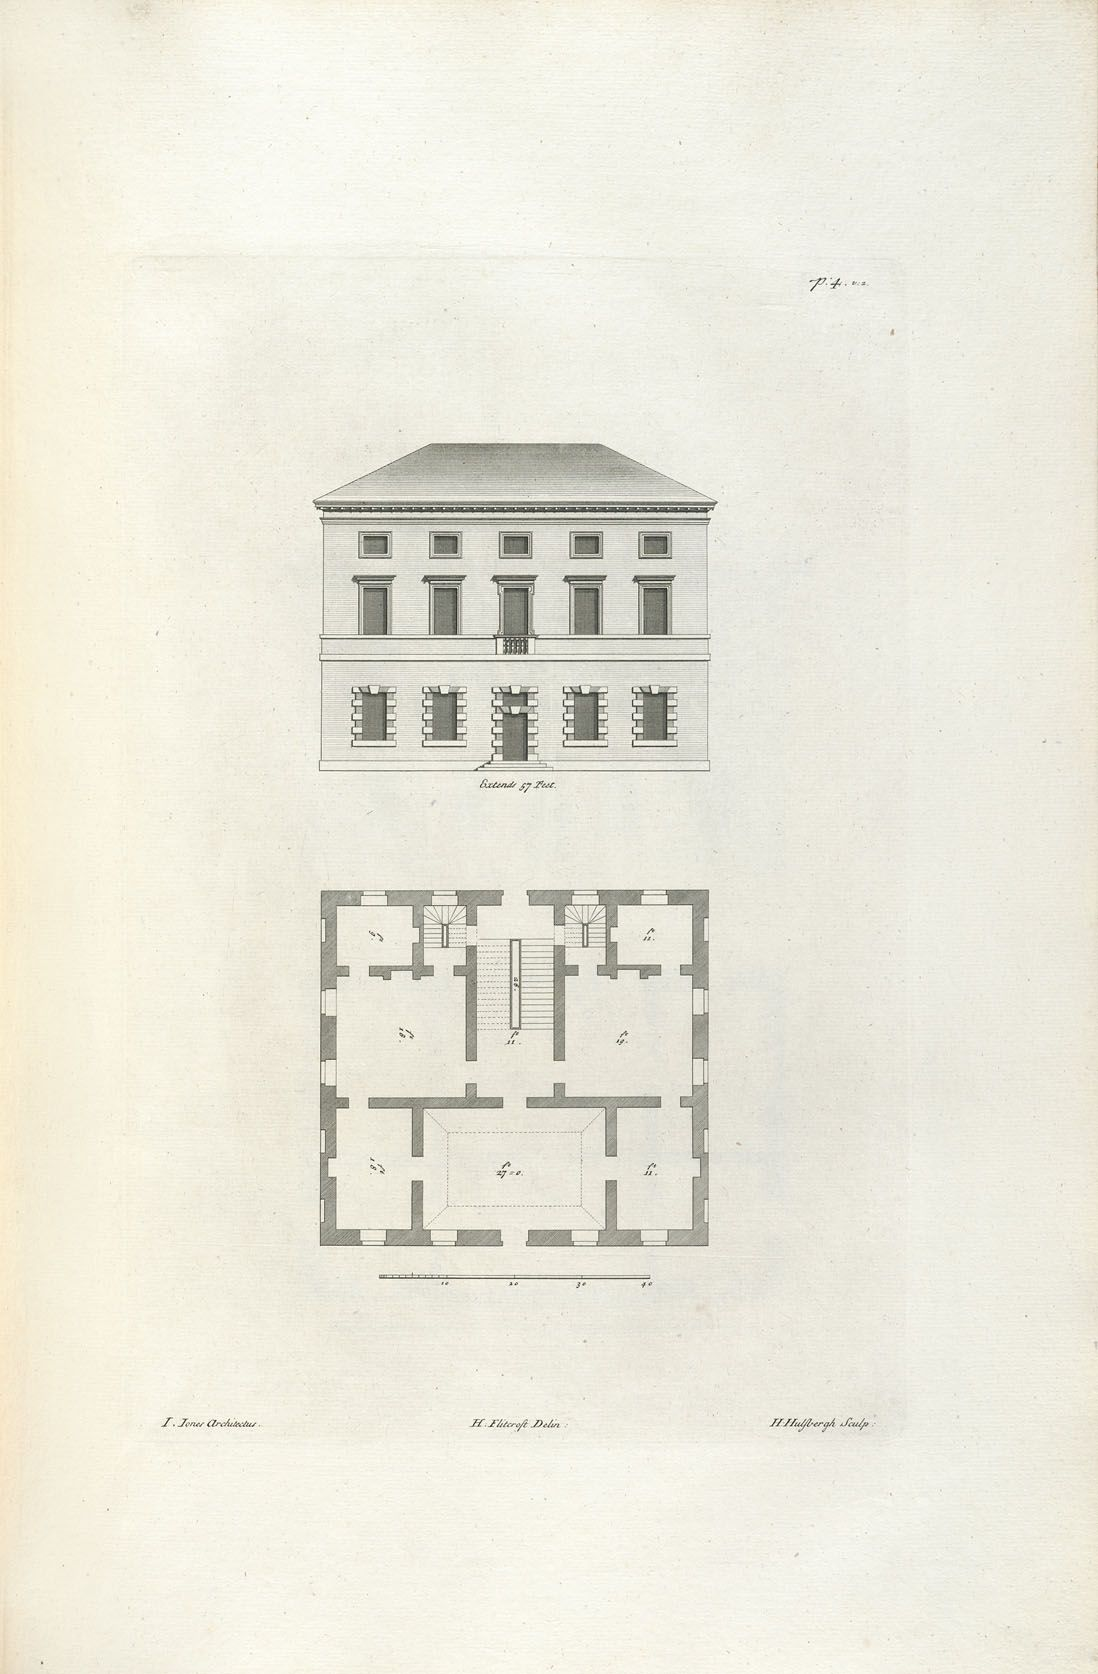 Decorative Arts The Designs Of Inigo Jones Consisting Of Plans And Elevations For Public And Private Bui In 2020 Vintage House Plans Vintage Architecture How To Plan